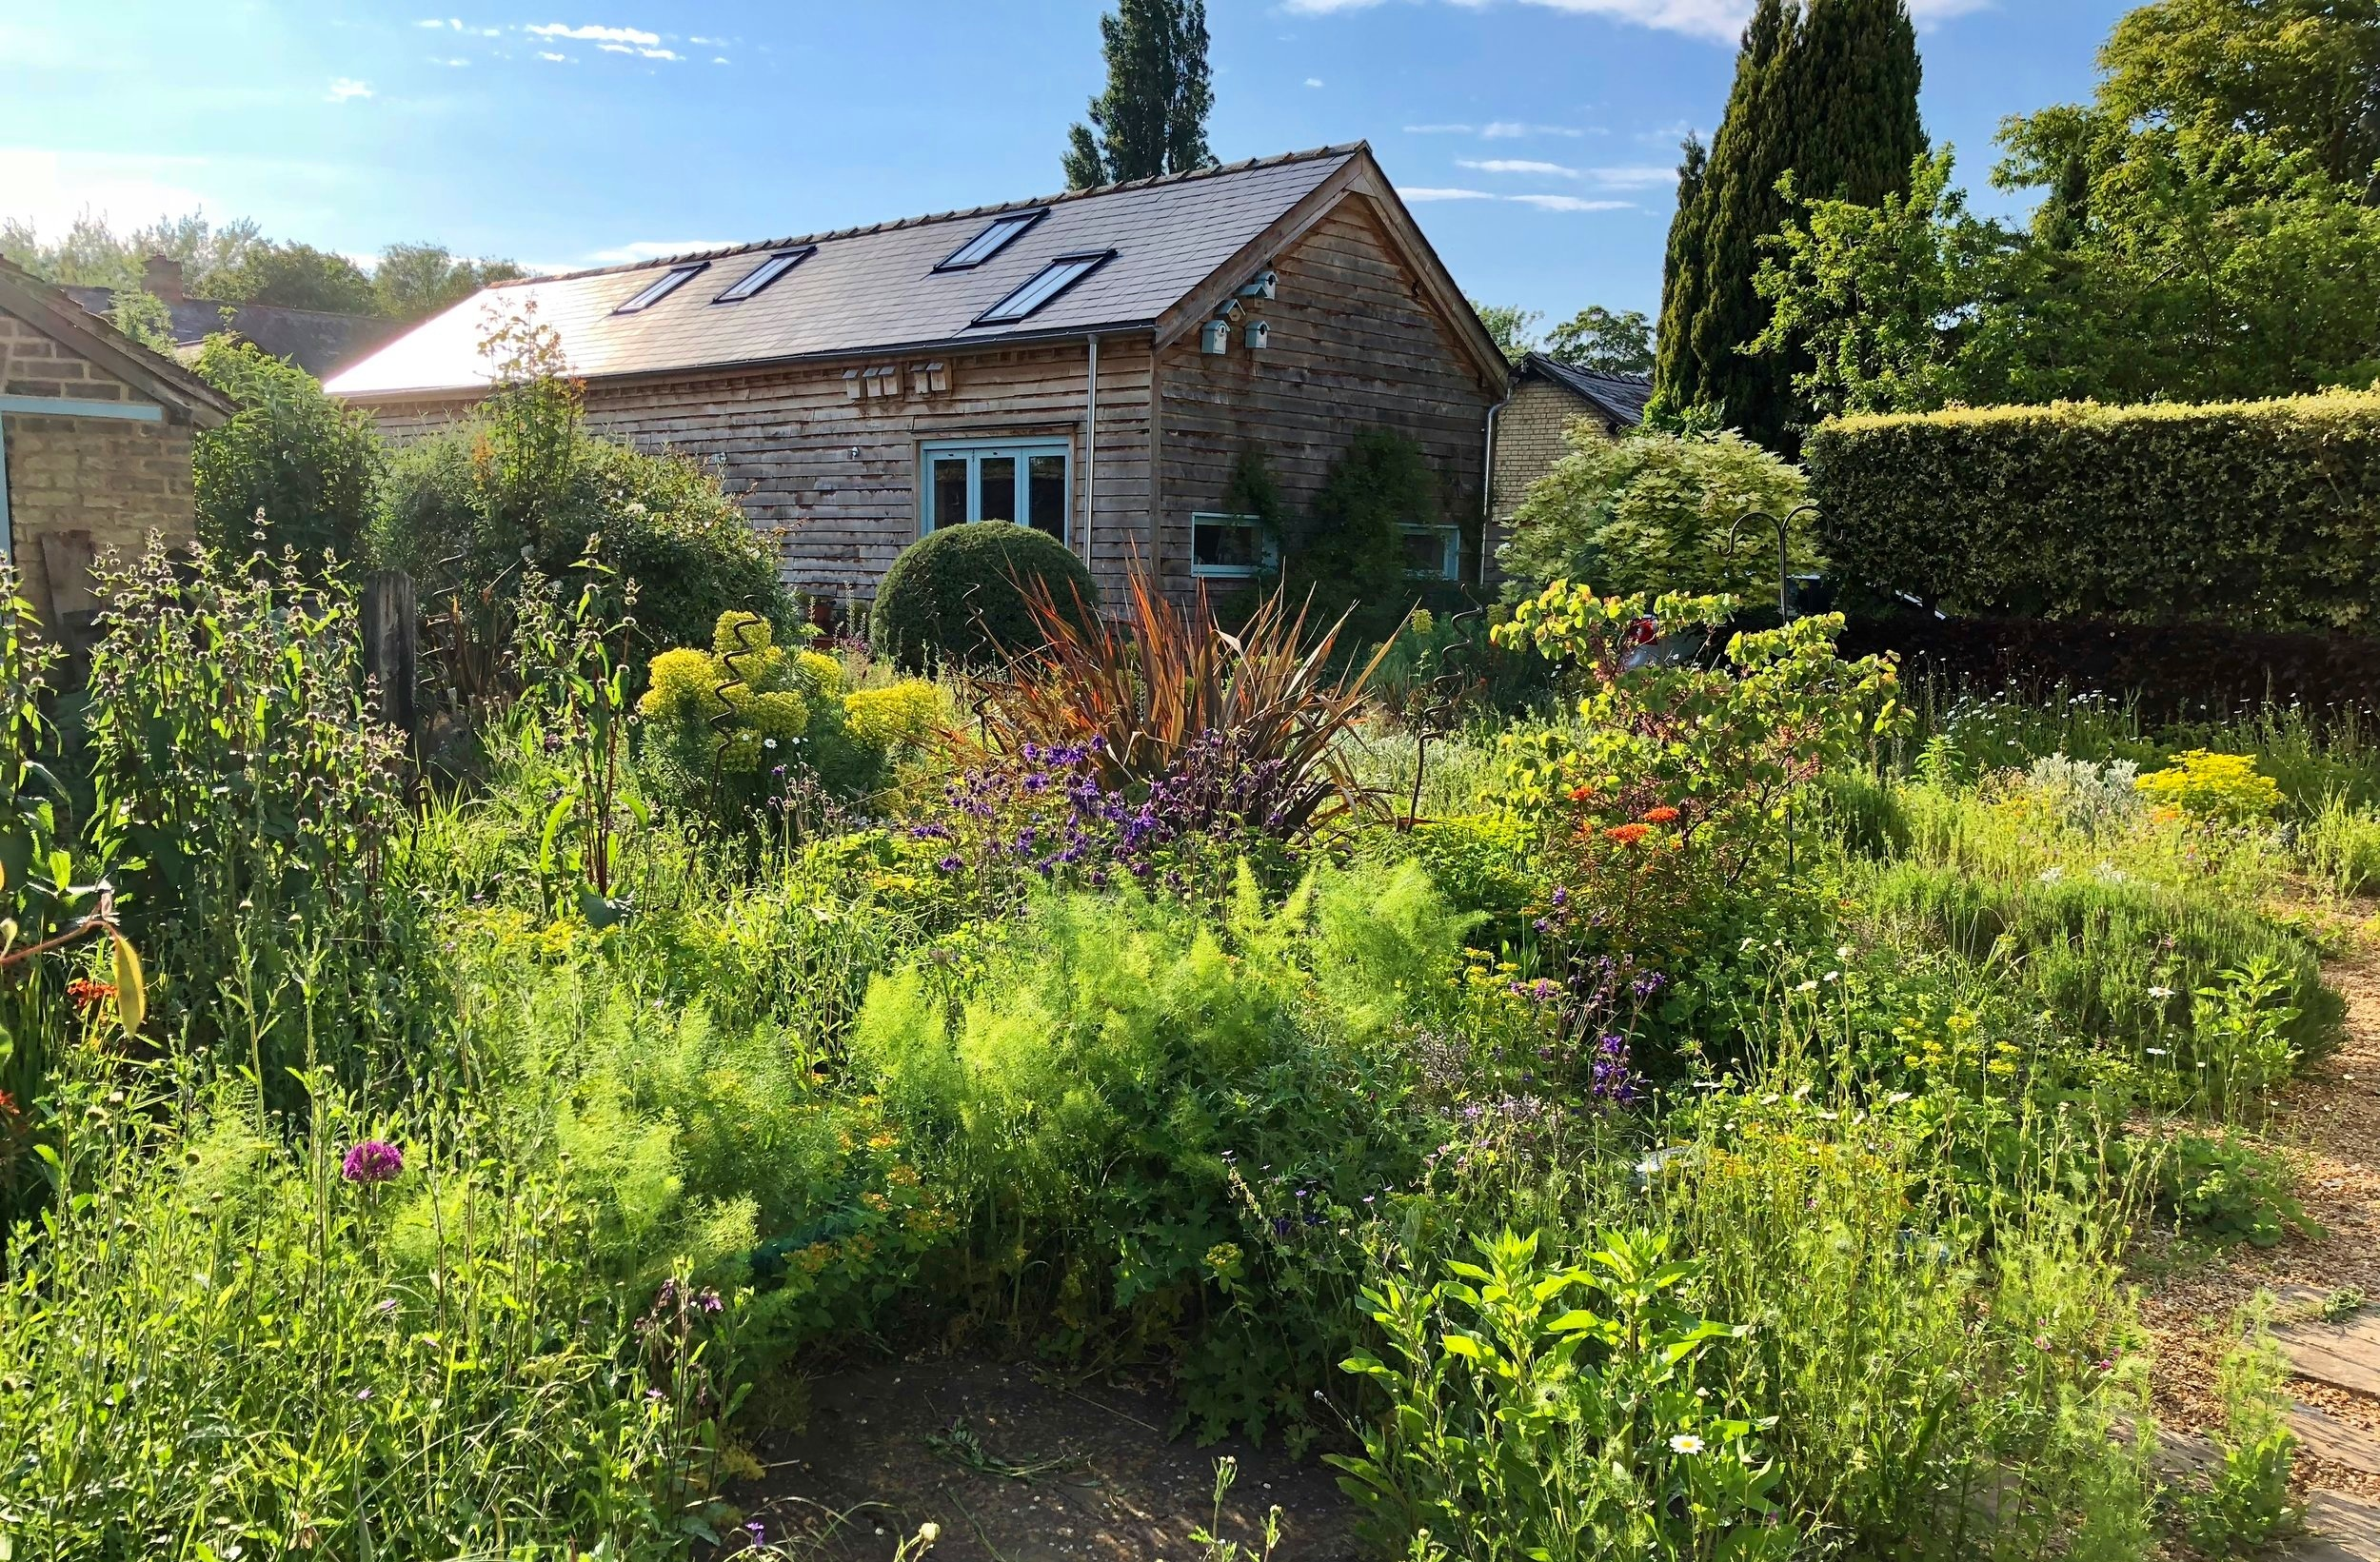 Artist Retreat - 17th-21st June 20195 days with Alex in the Studio is an opportunity for any artists who is looking for time and space to realign with their art.